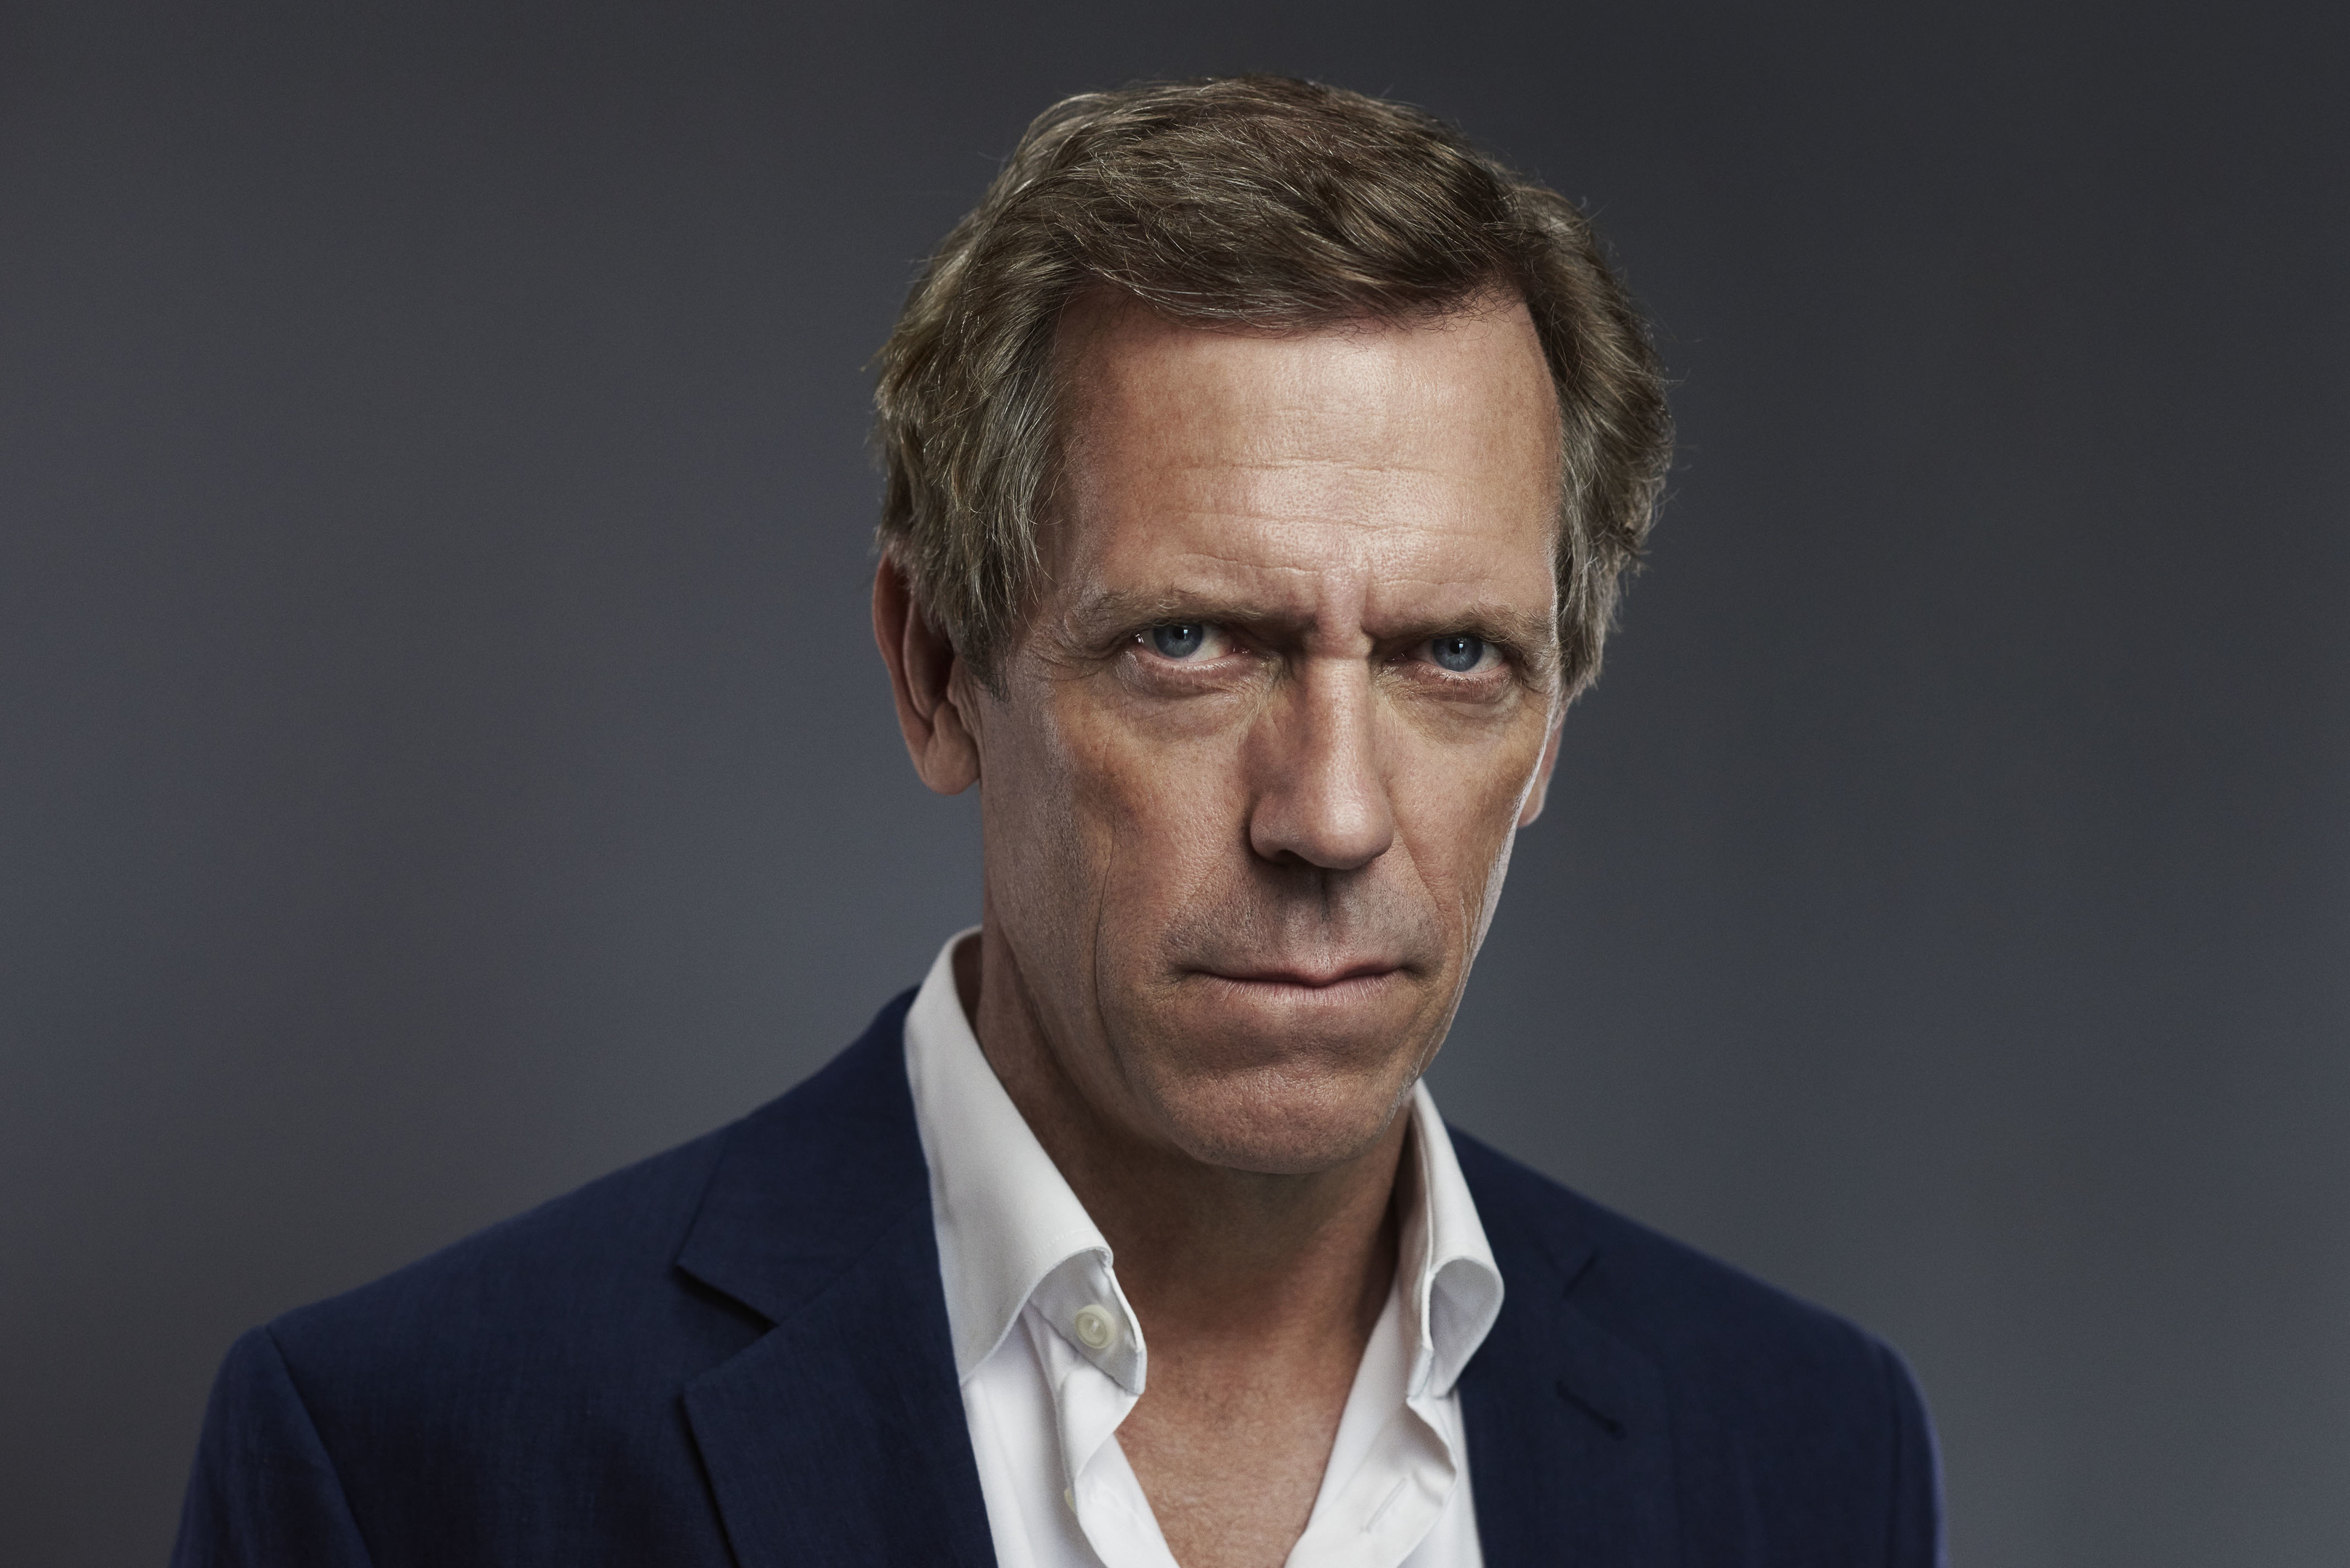 The 58-year old son of father (?) and mother Patricia, 185 cm tall Hugh Laurie in 2018 photo